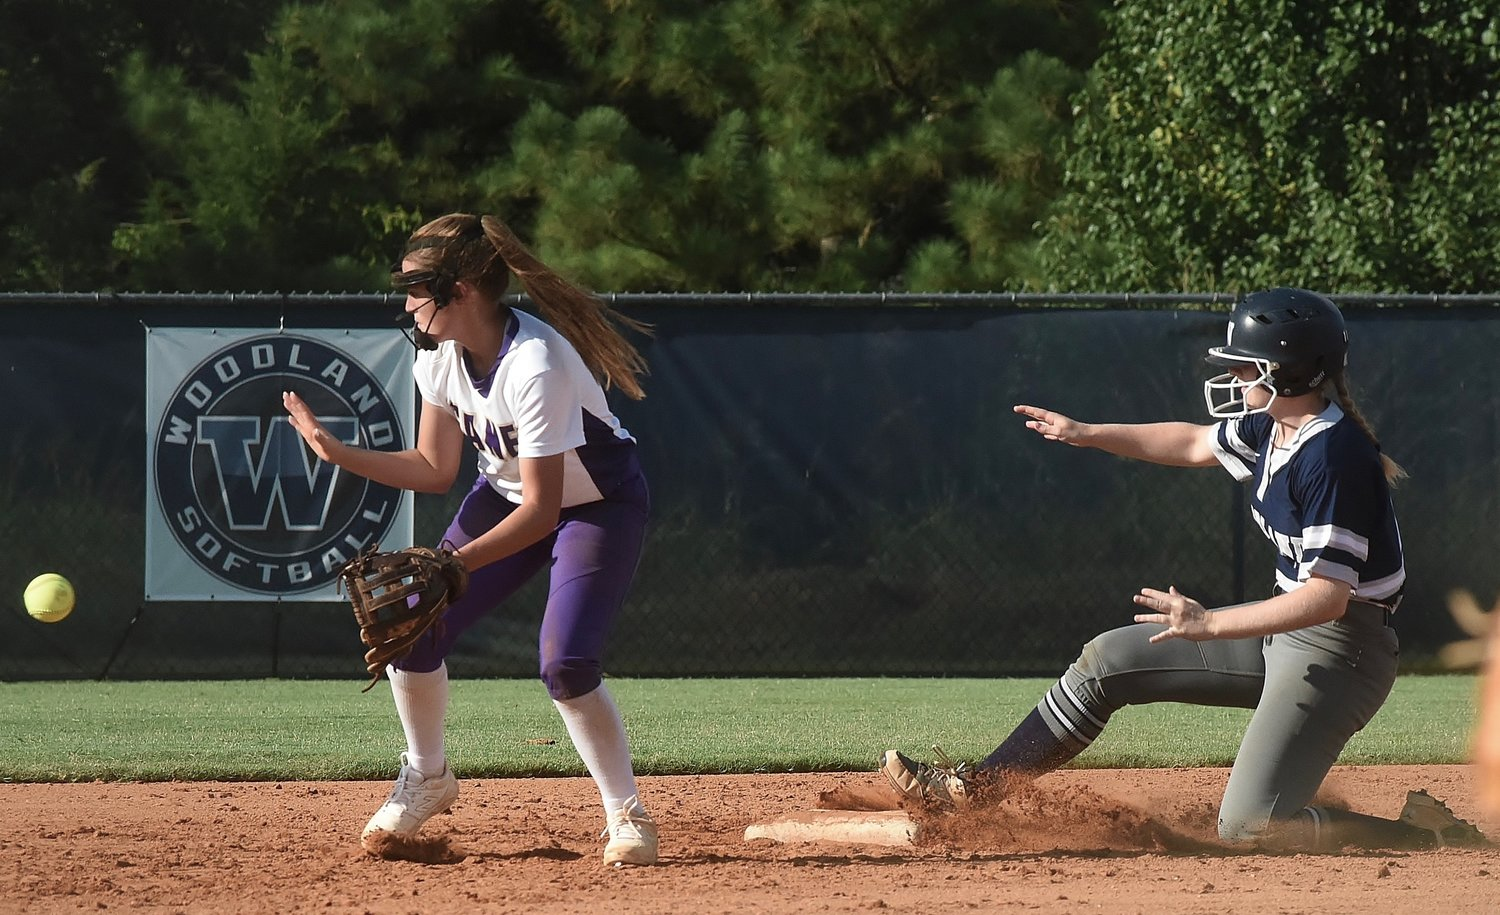 Cartersville senior Hope Short, left, fields a throw, as Woodland senior Allyssa Motes slides safely into second base for a double in the bottom of the second inning. Motes eventually scored the go-ahead run on a hit by Morgan Bailey to help the Wildcats to a 10-6 home win Thursday.